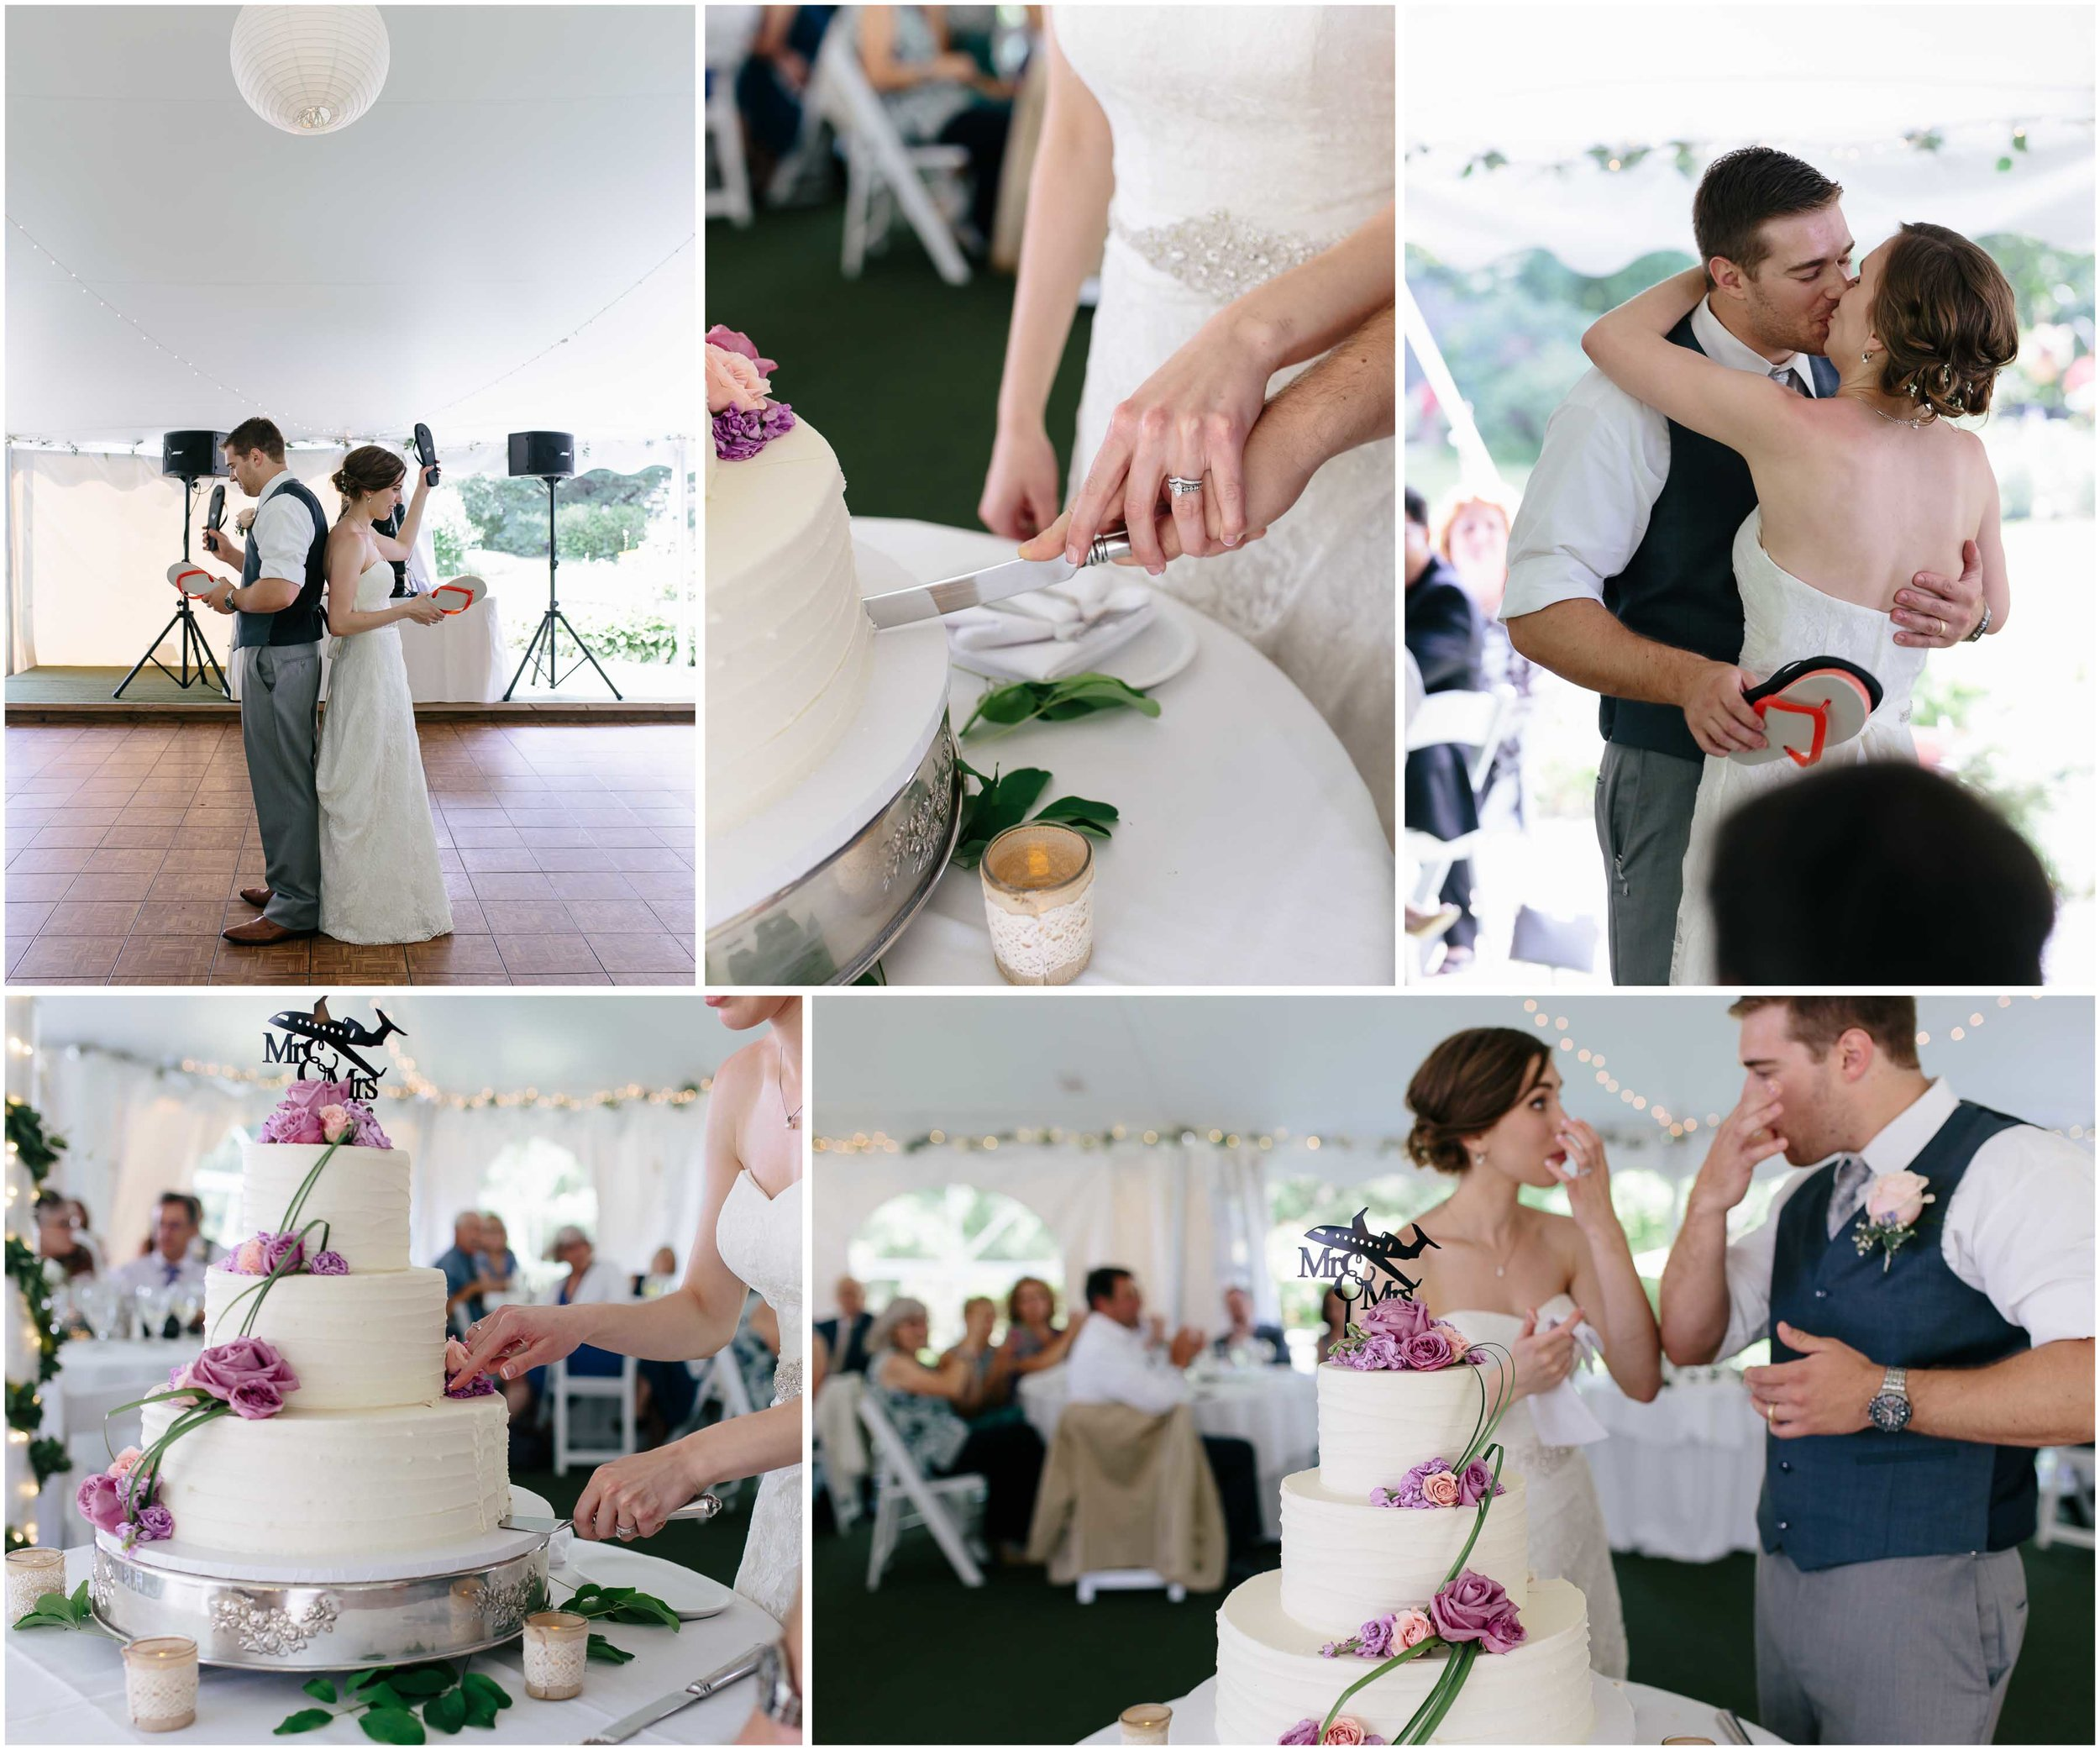 Sunny New Hampshire Summer Wedding at Mile Away Restaurant Milford - cake